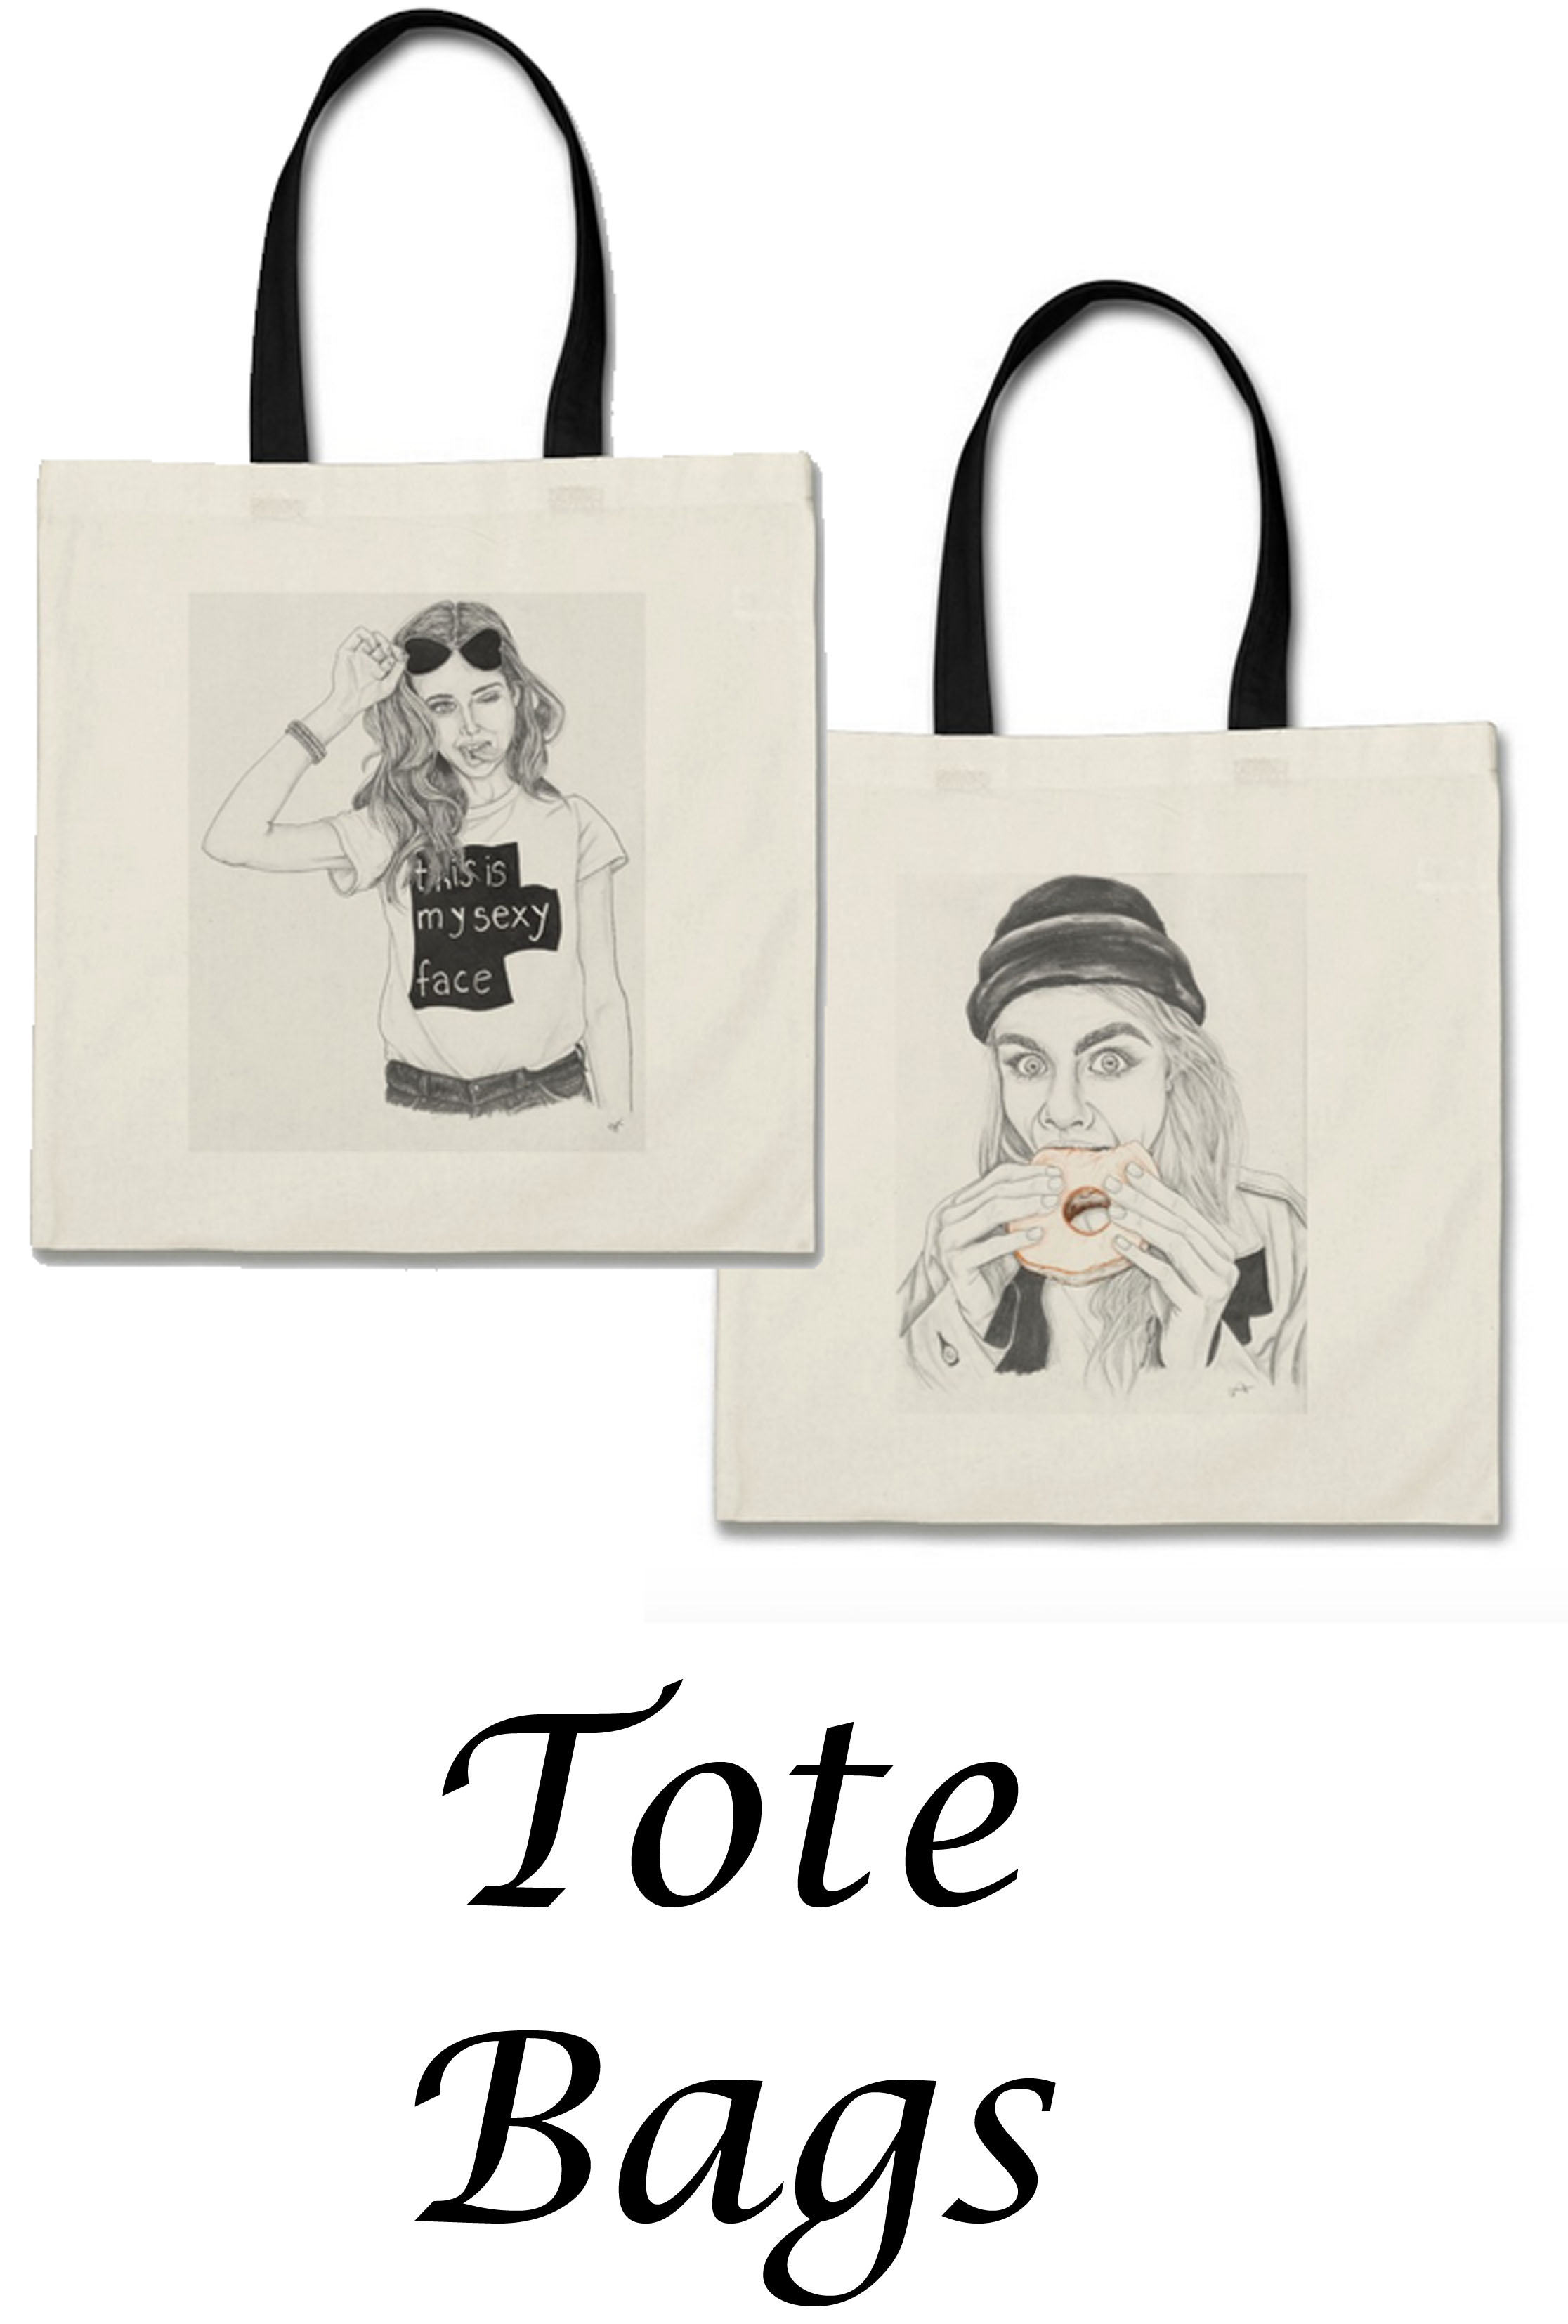 shop cait chock tote bags art